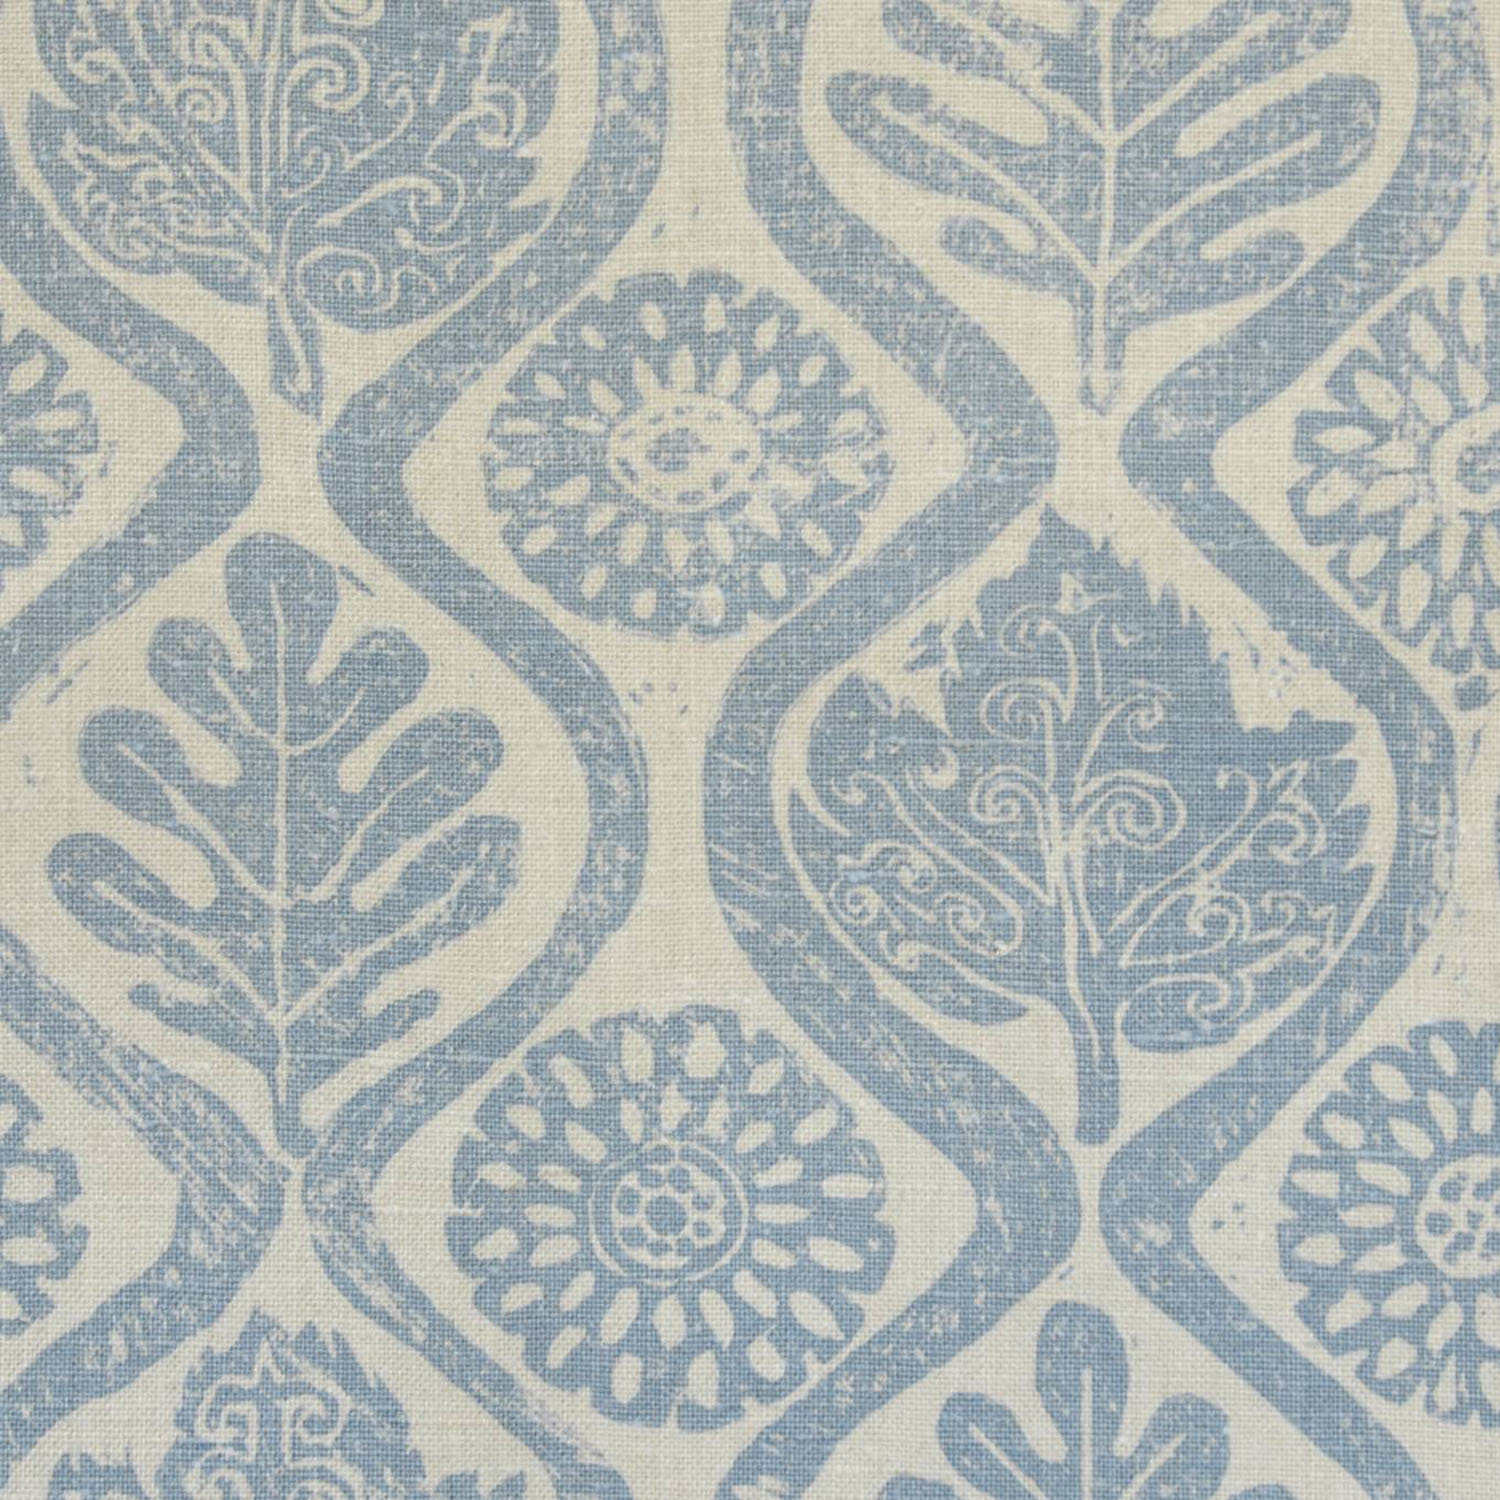 <p><strong>OAKLEAVES</strong>blue 6200-01<a href=/the-peggy-angus-collection/oakleaves-blue-6200-01>More →</a></p>